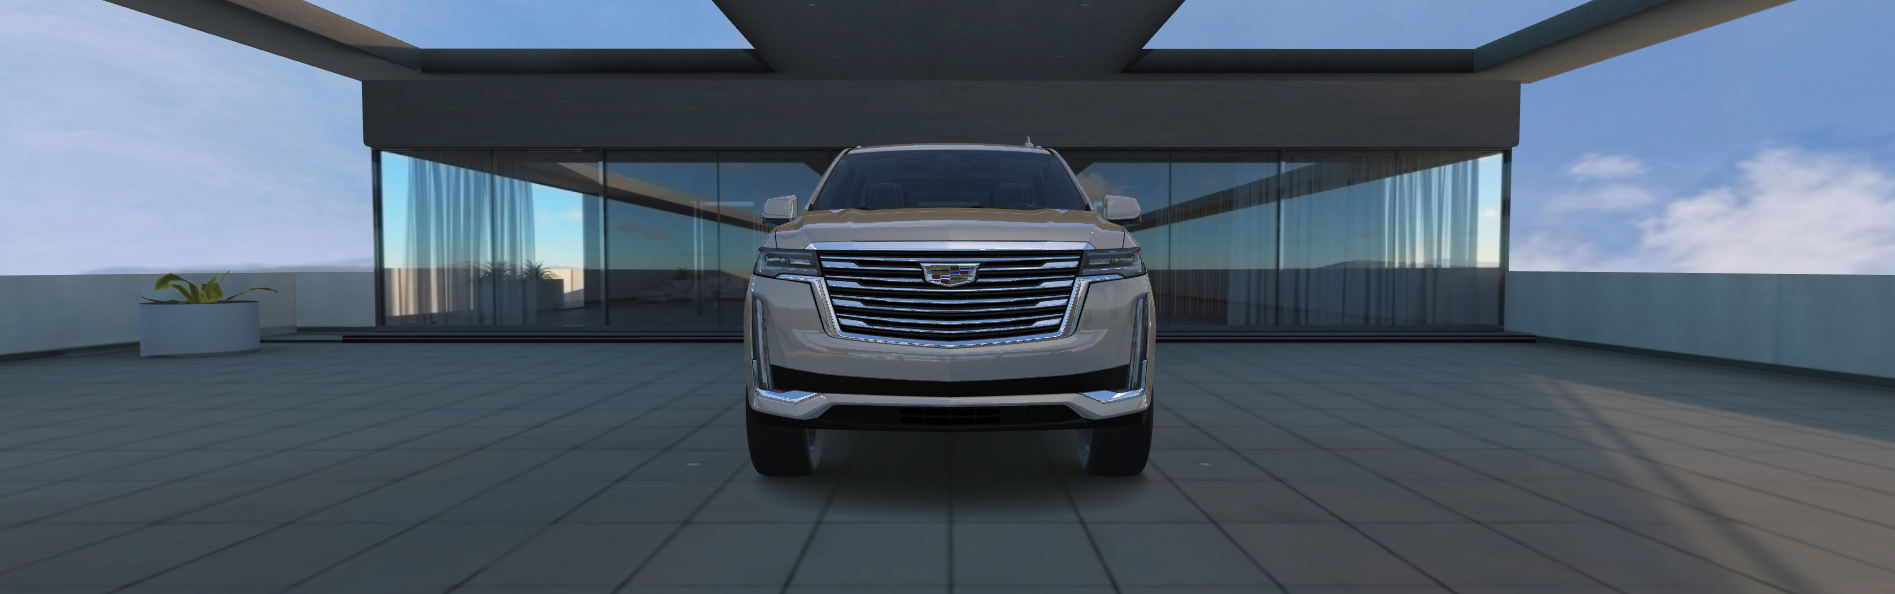 Escalade grille design